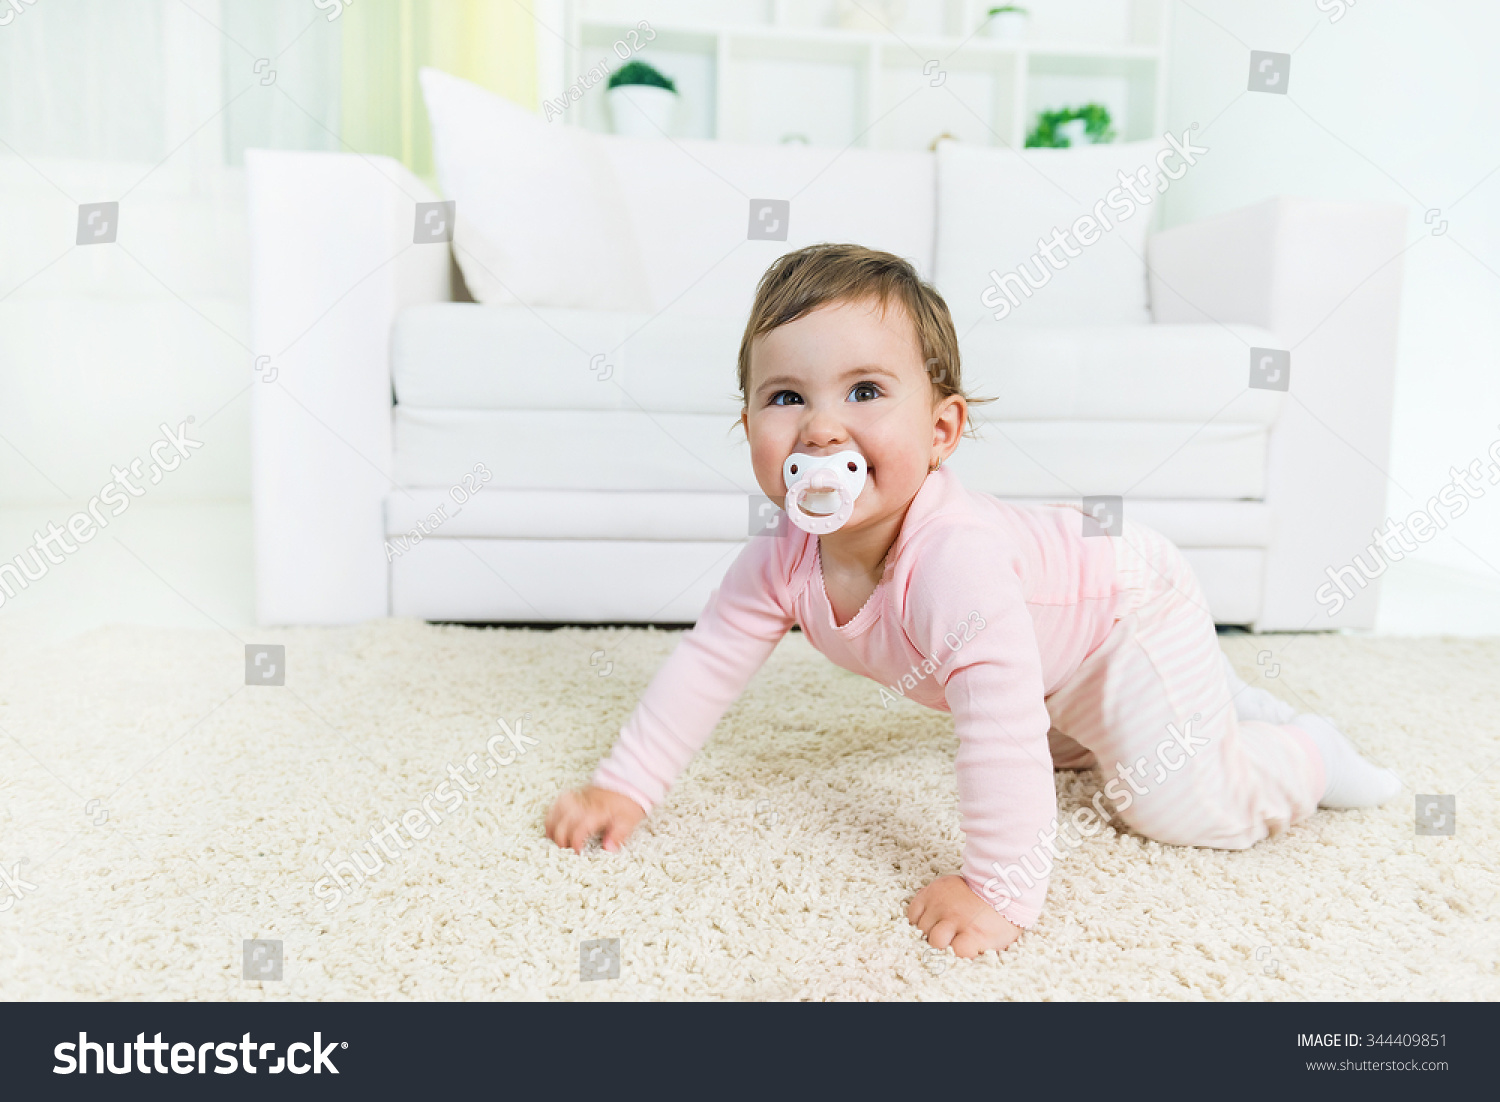 baby living room with pacifier images usseek 10607